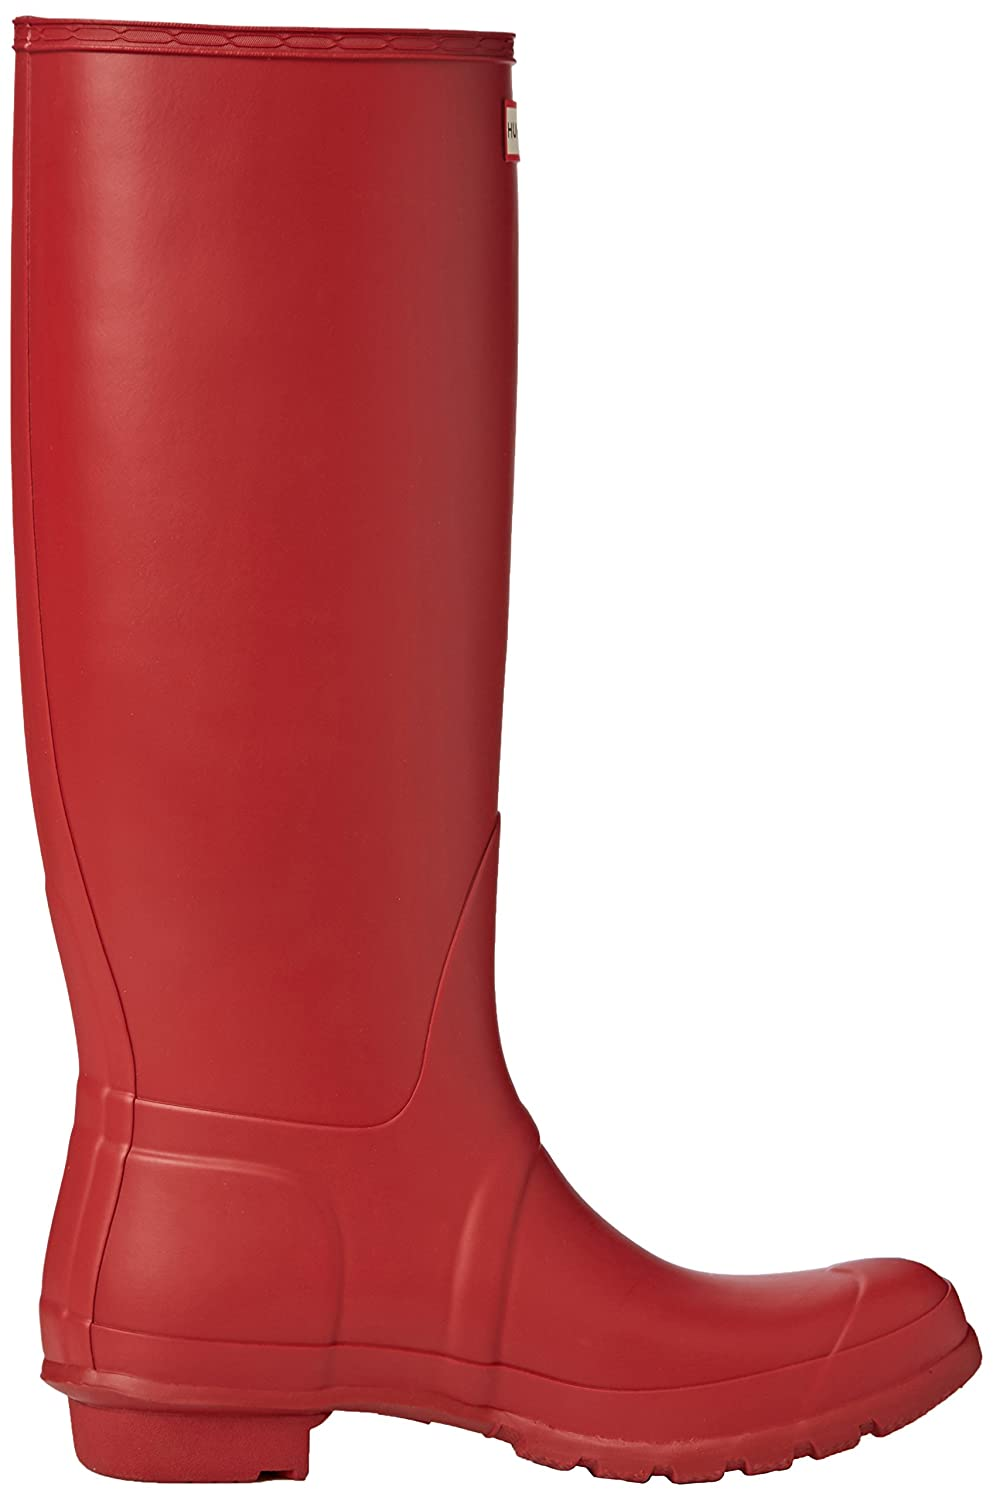 HUNTER Tall Botas de agua Mujer, Rojo (Military Red), 42 EU (8 UK): Amazon.es: Zapatos y complementos